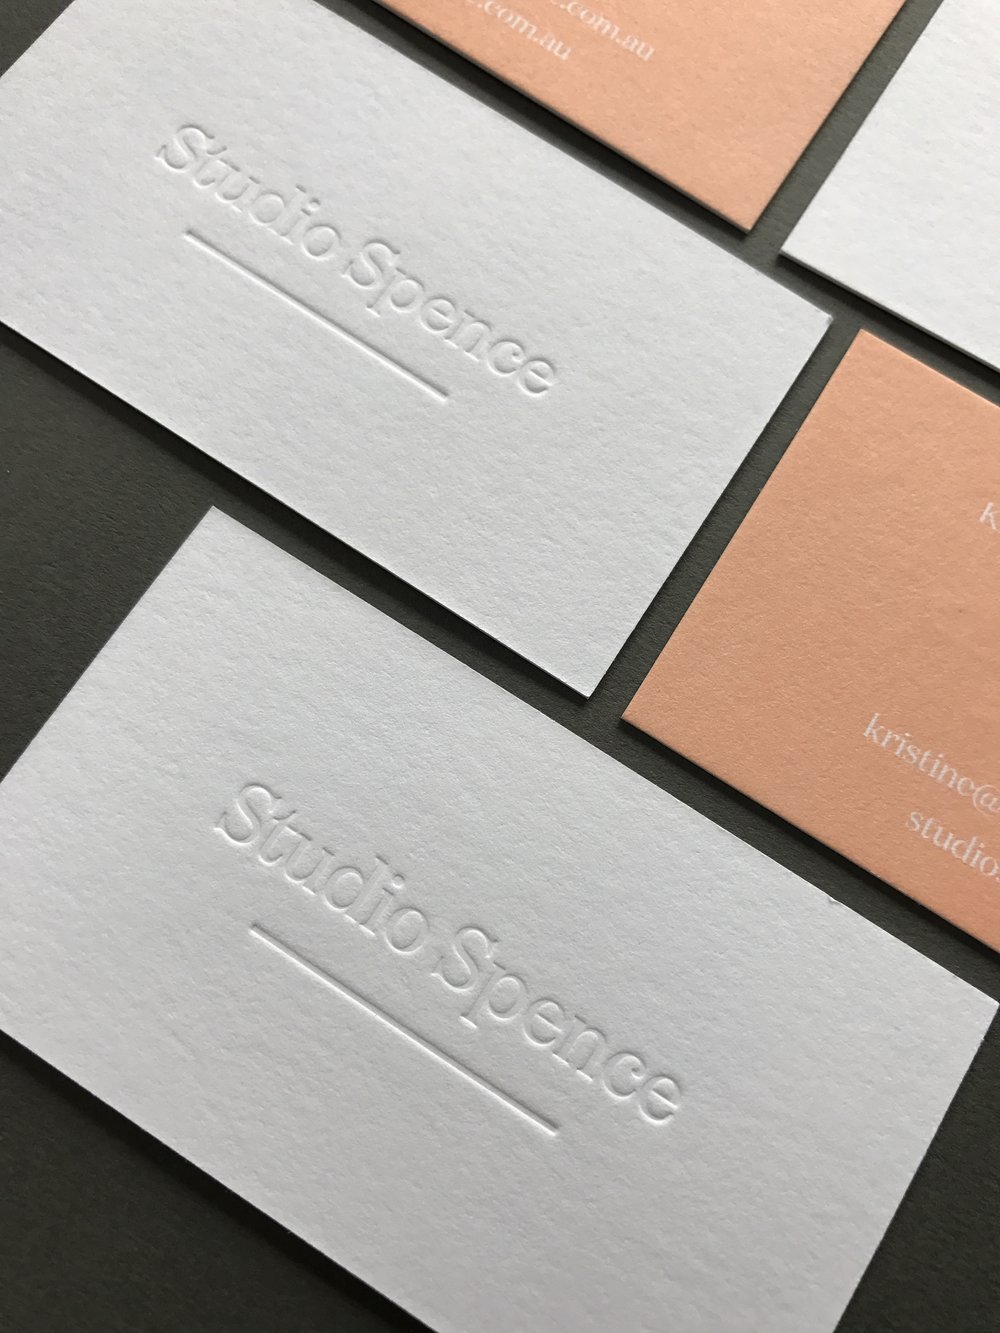 Studio Spence business cards printed by  Morgan Printing .